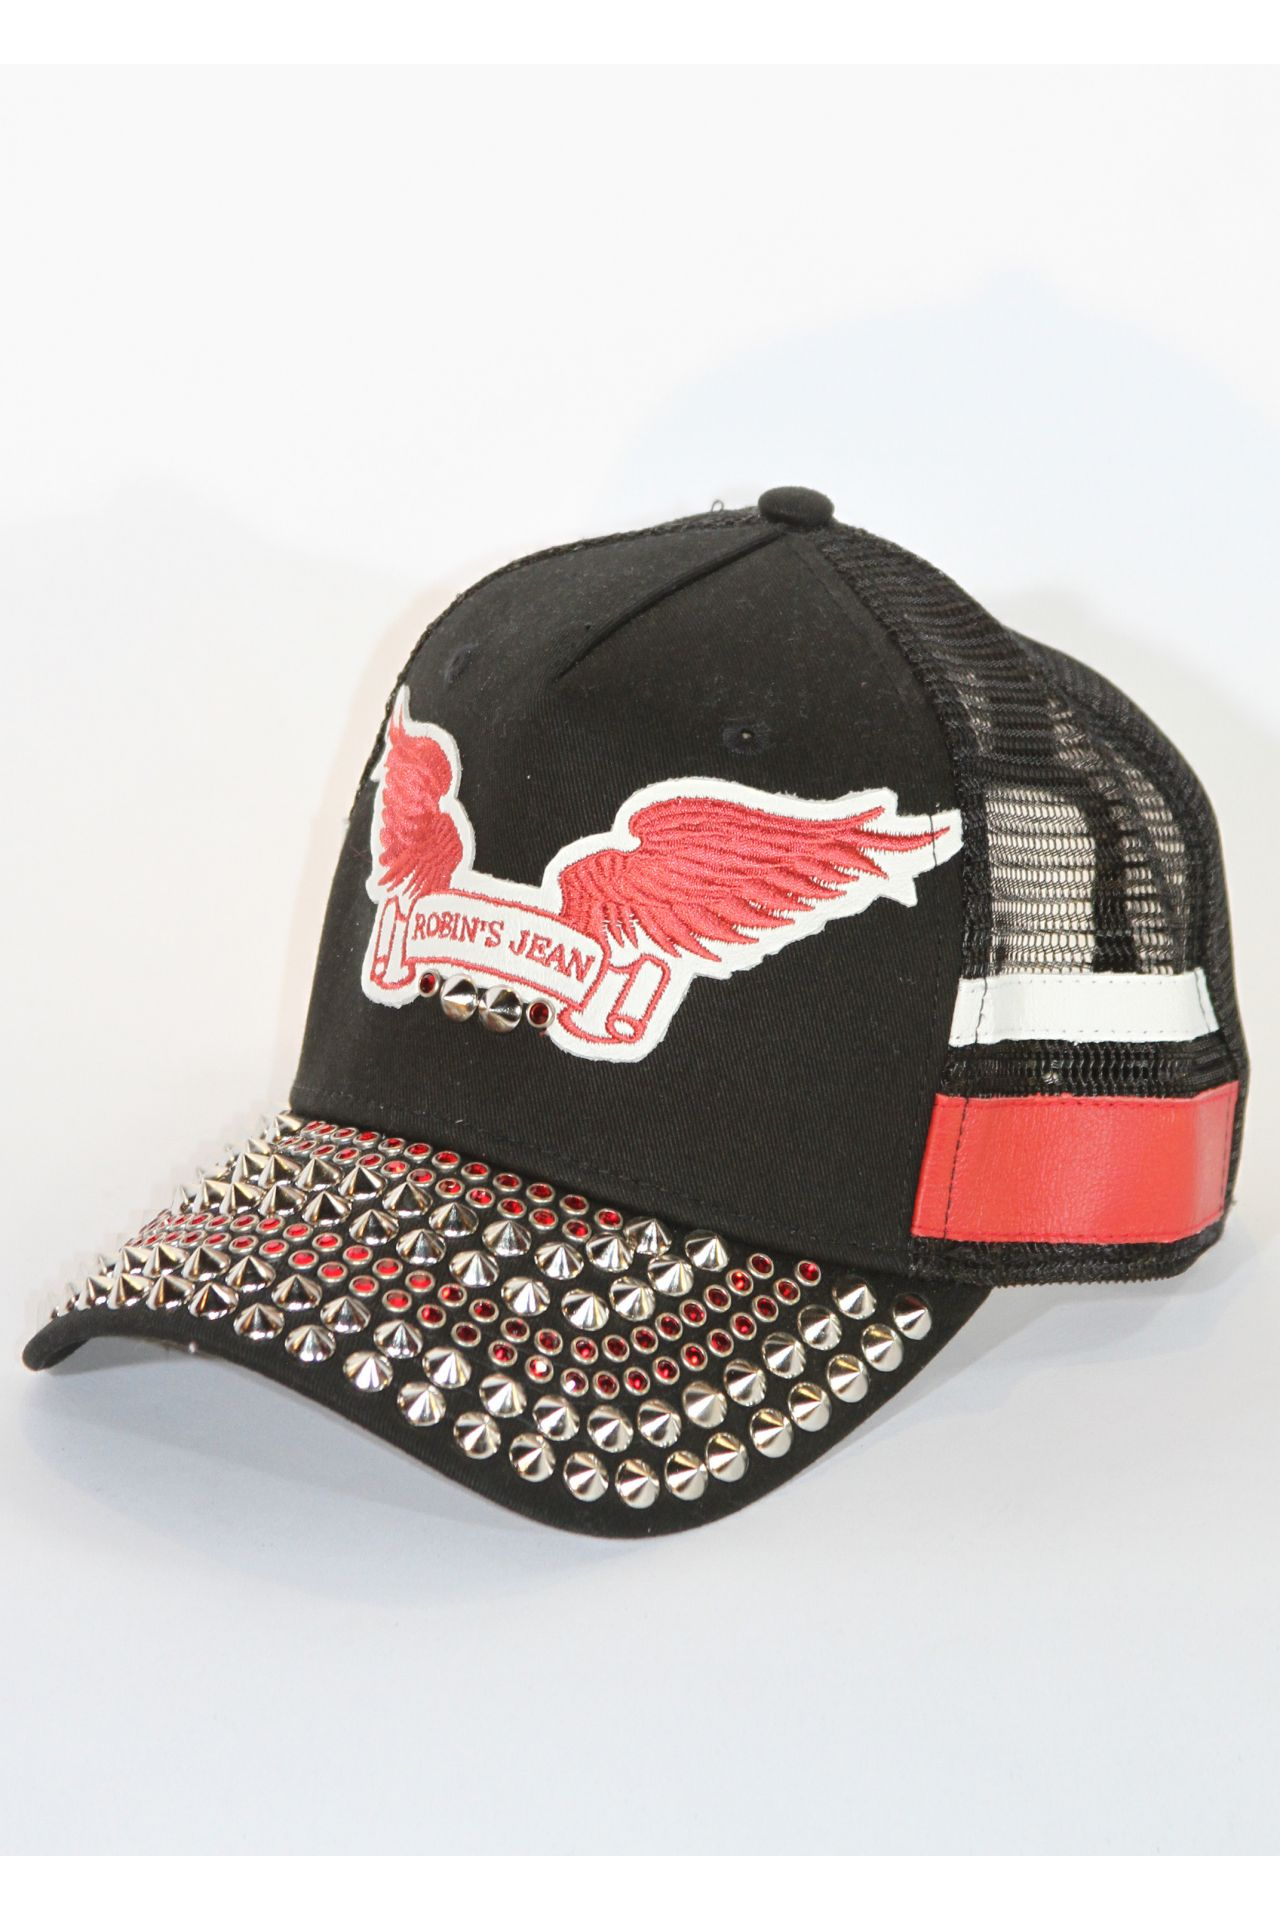 BLACK TRUCKER CAP WITH RED SW AND NICKLE SPIKES